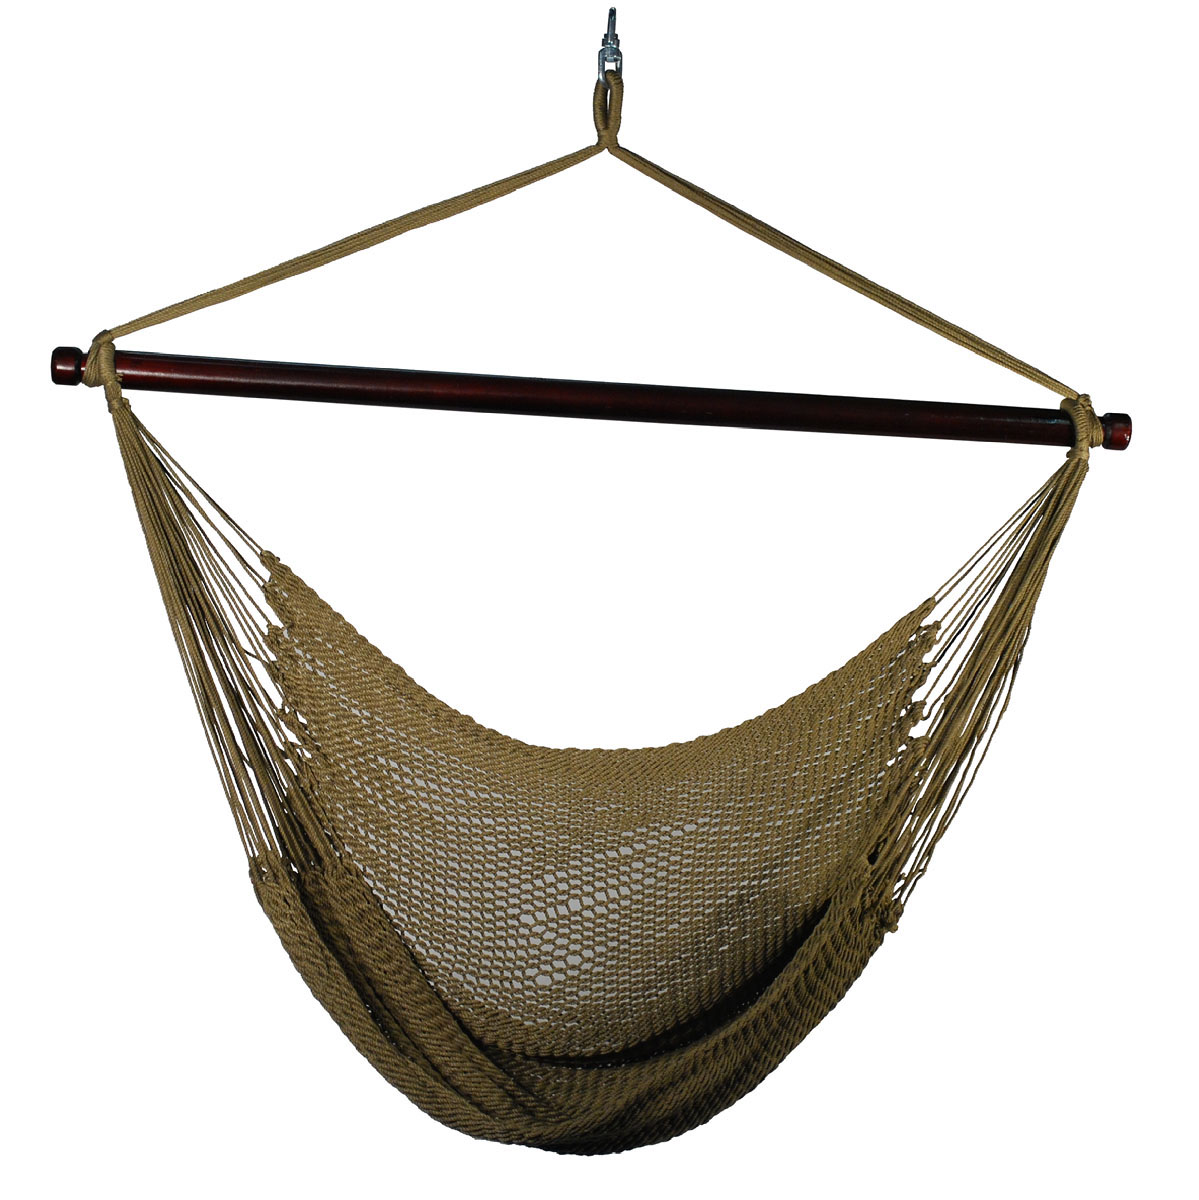 Hanging Caribbean Rope Chair - Tan